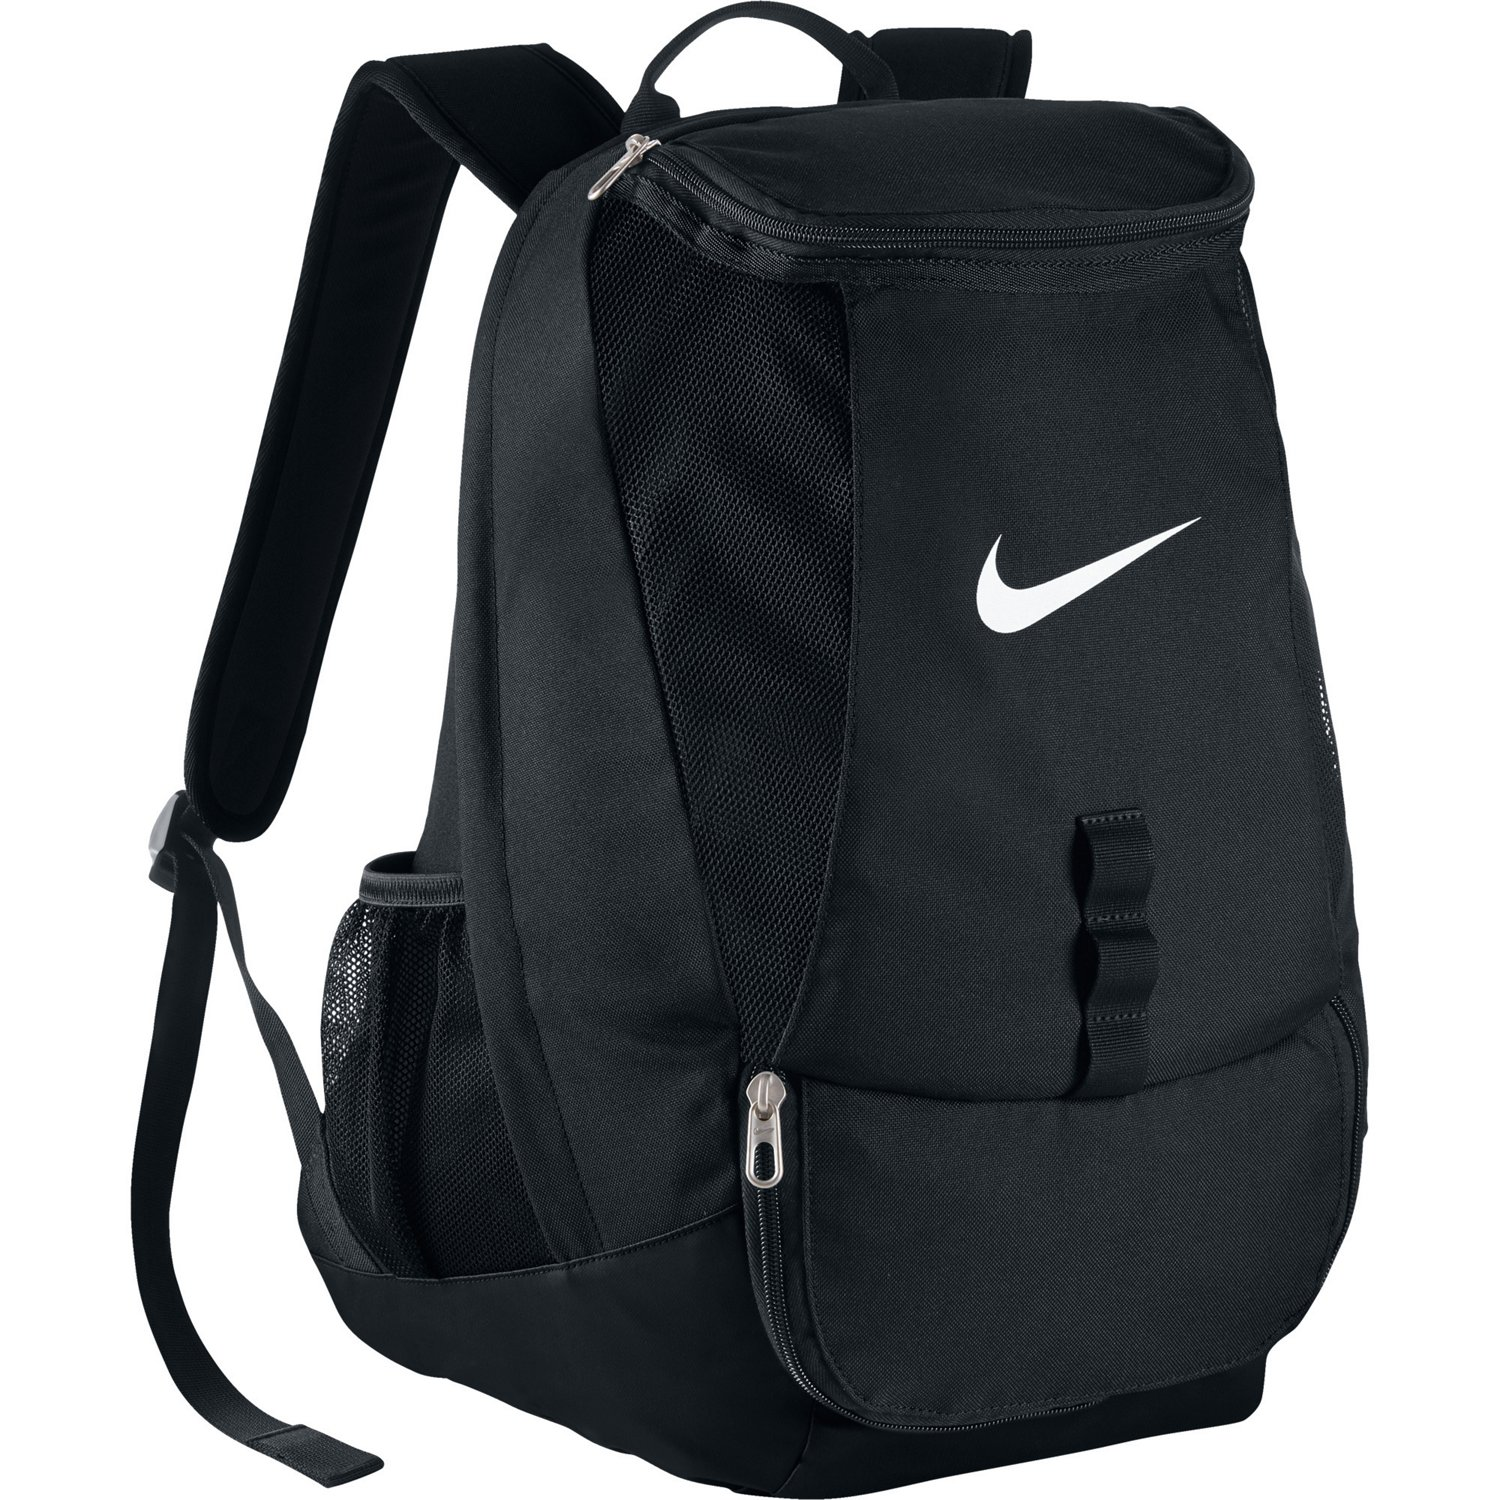 e5ccb8fee483 Display product reviews for Nike Men s Club Team Swoosh Soccer Backpack